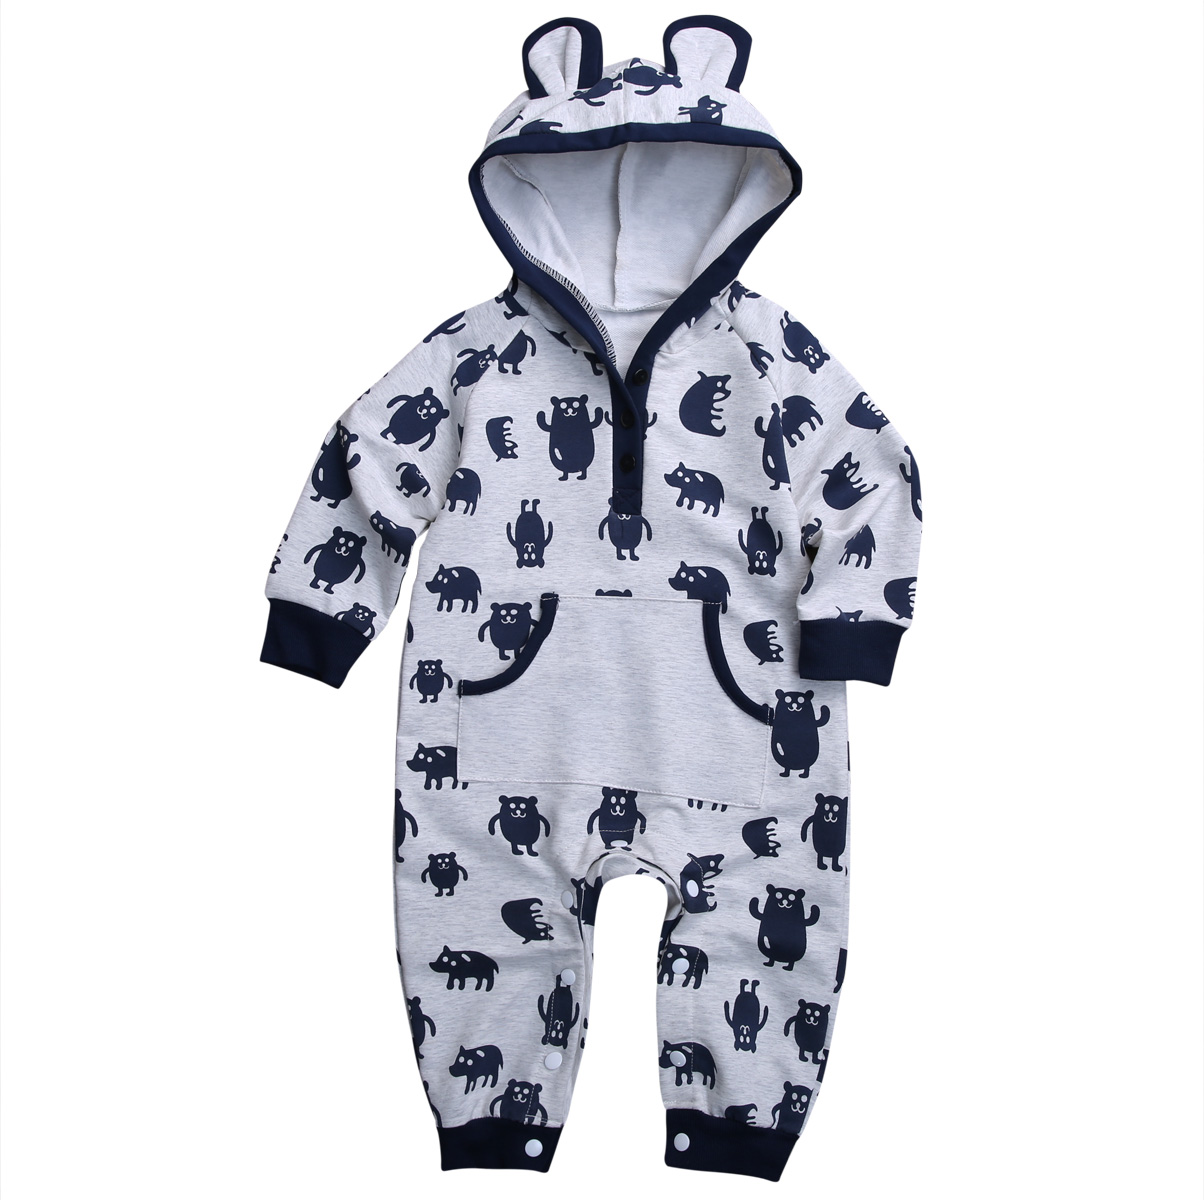 Newborn Infant Baby Boy Girl Kids Winter Clothes Cotton Warm Bear Long Romper Jumpsuit Outfit baby boy clothes kids bodysuit infant coverall newborn romper short sleeve polo shirt cotton children costume outfit suit